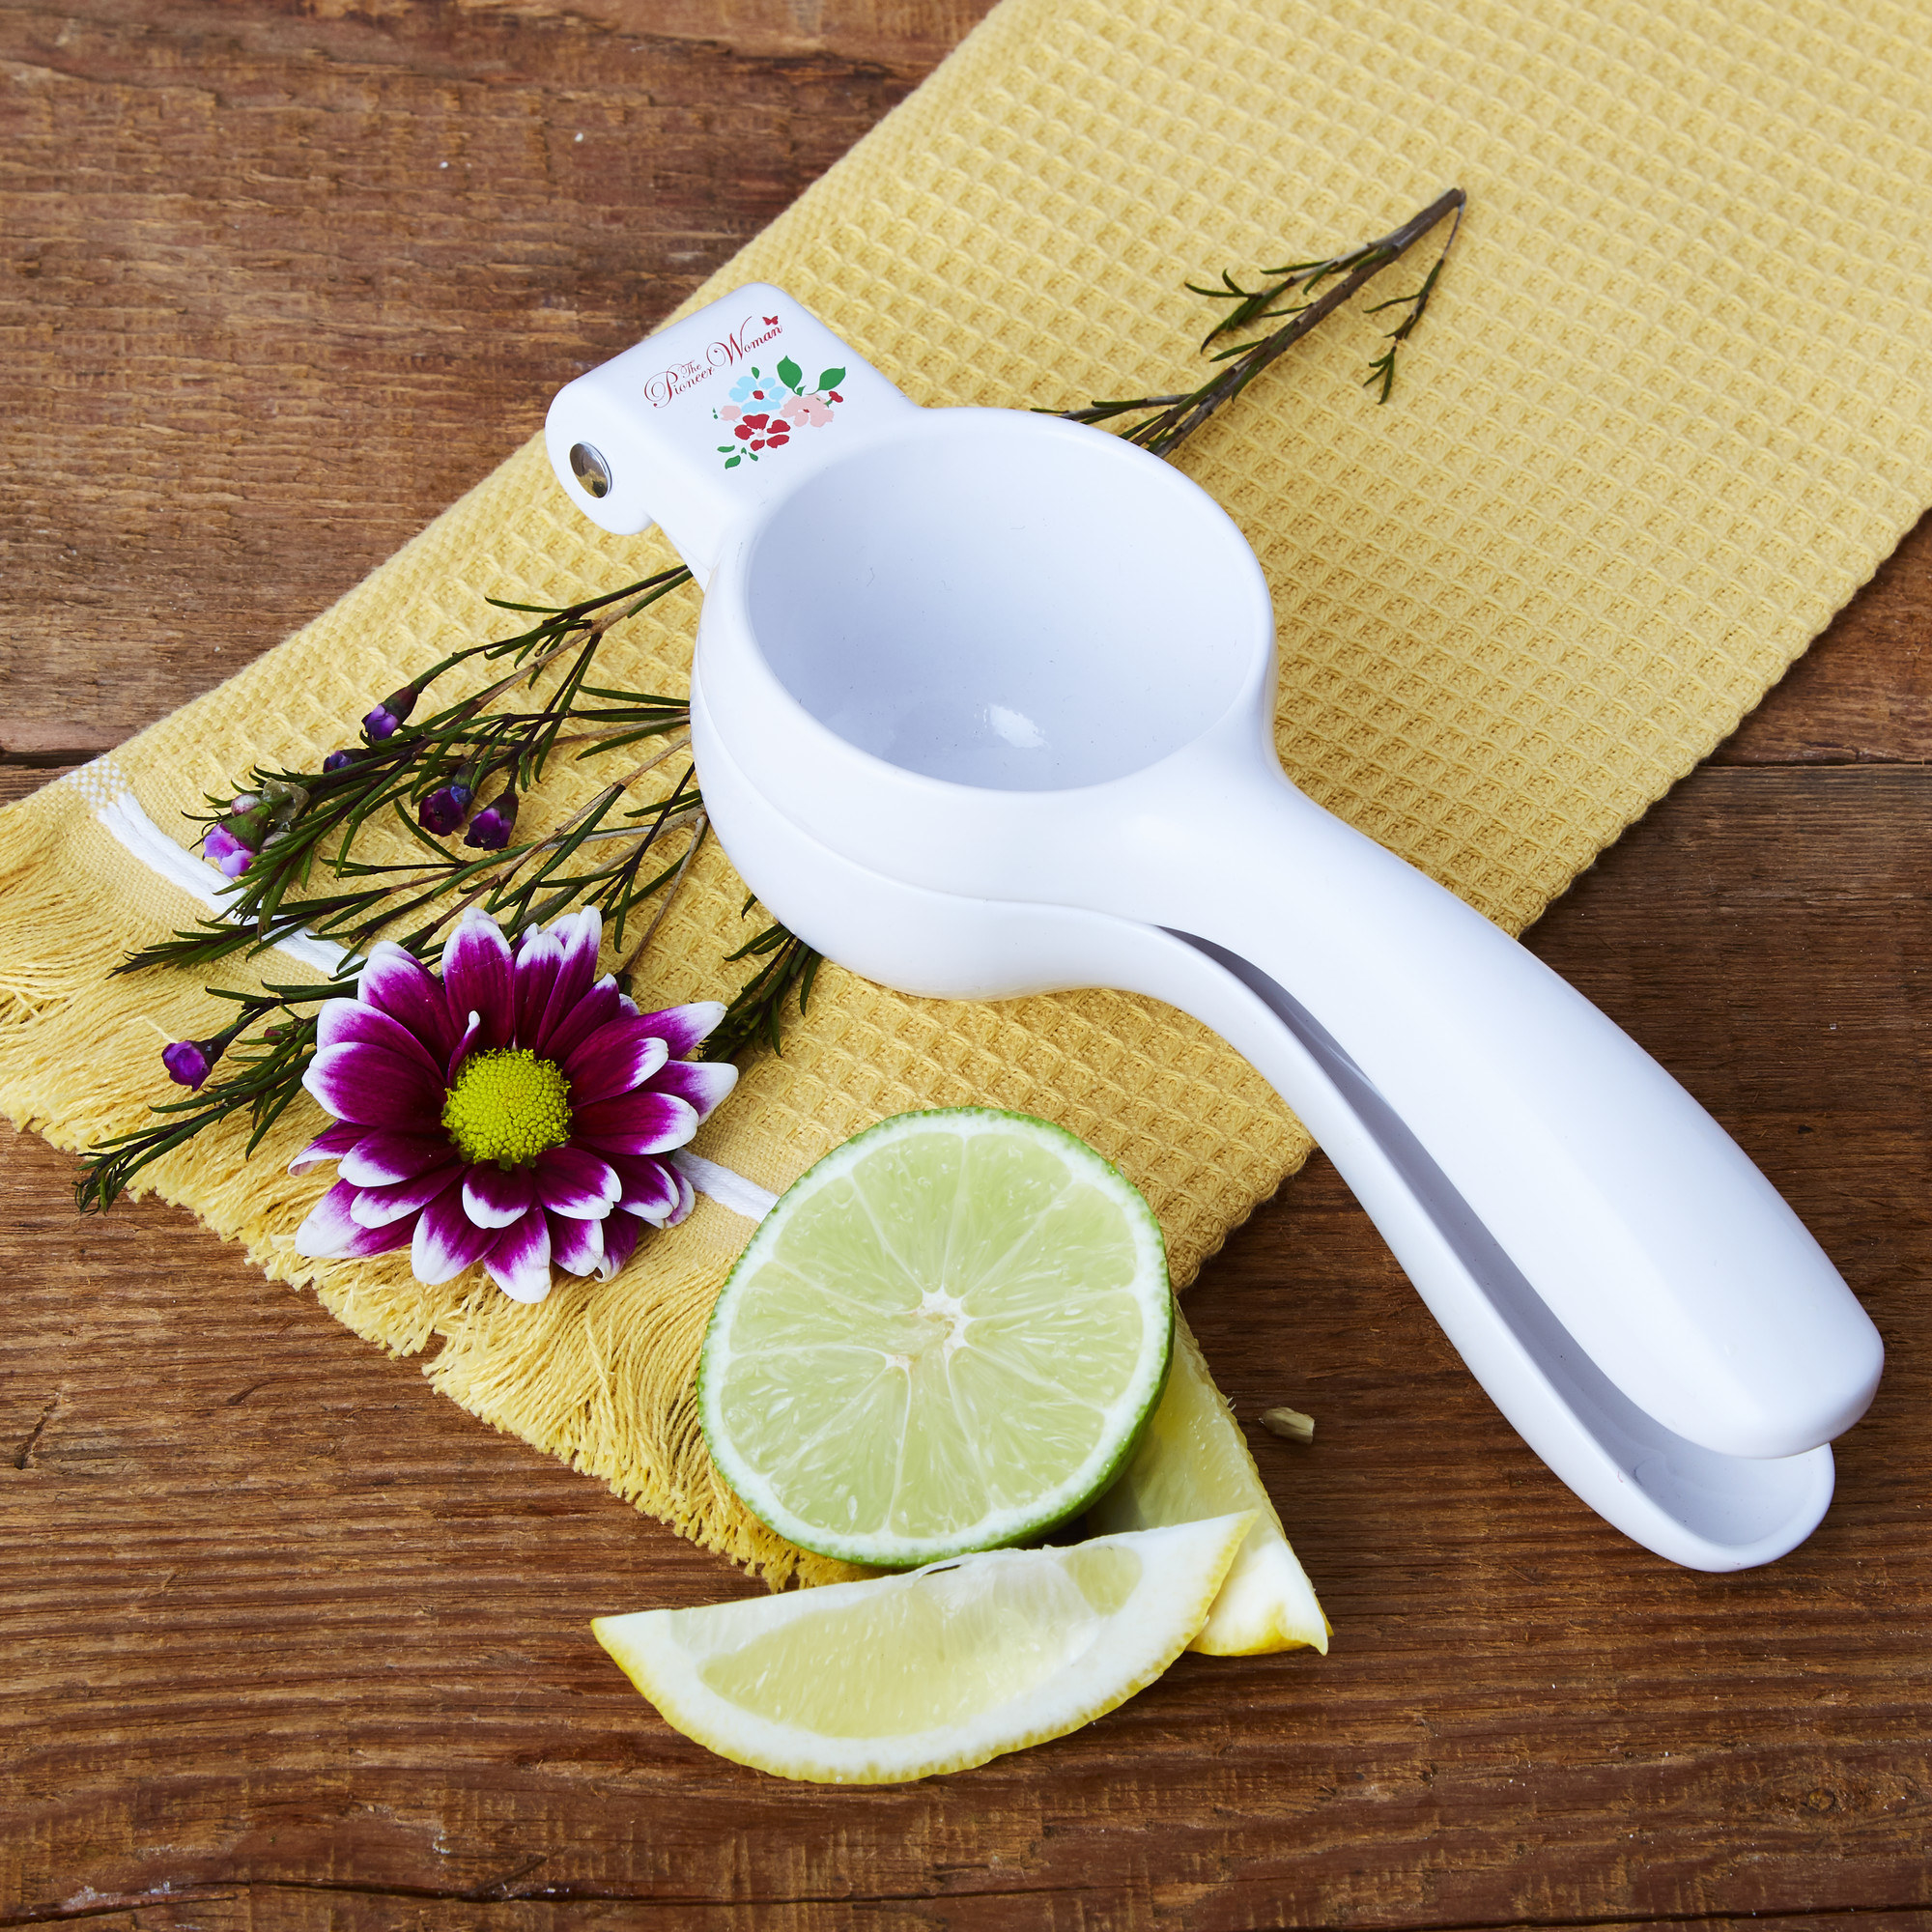 white citrus juicer on a yellow kitchen towel